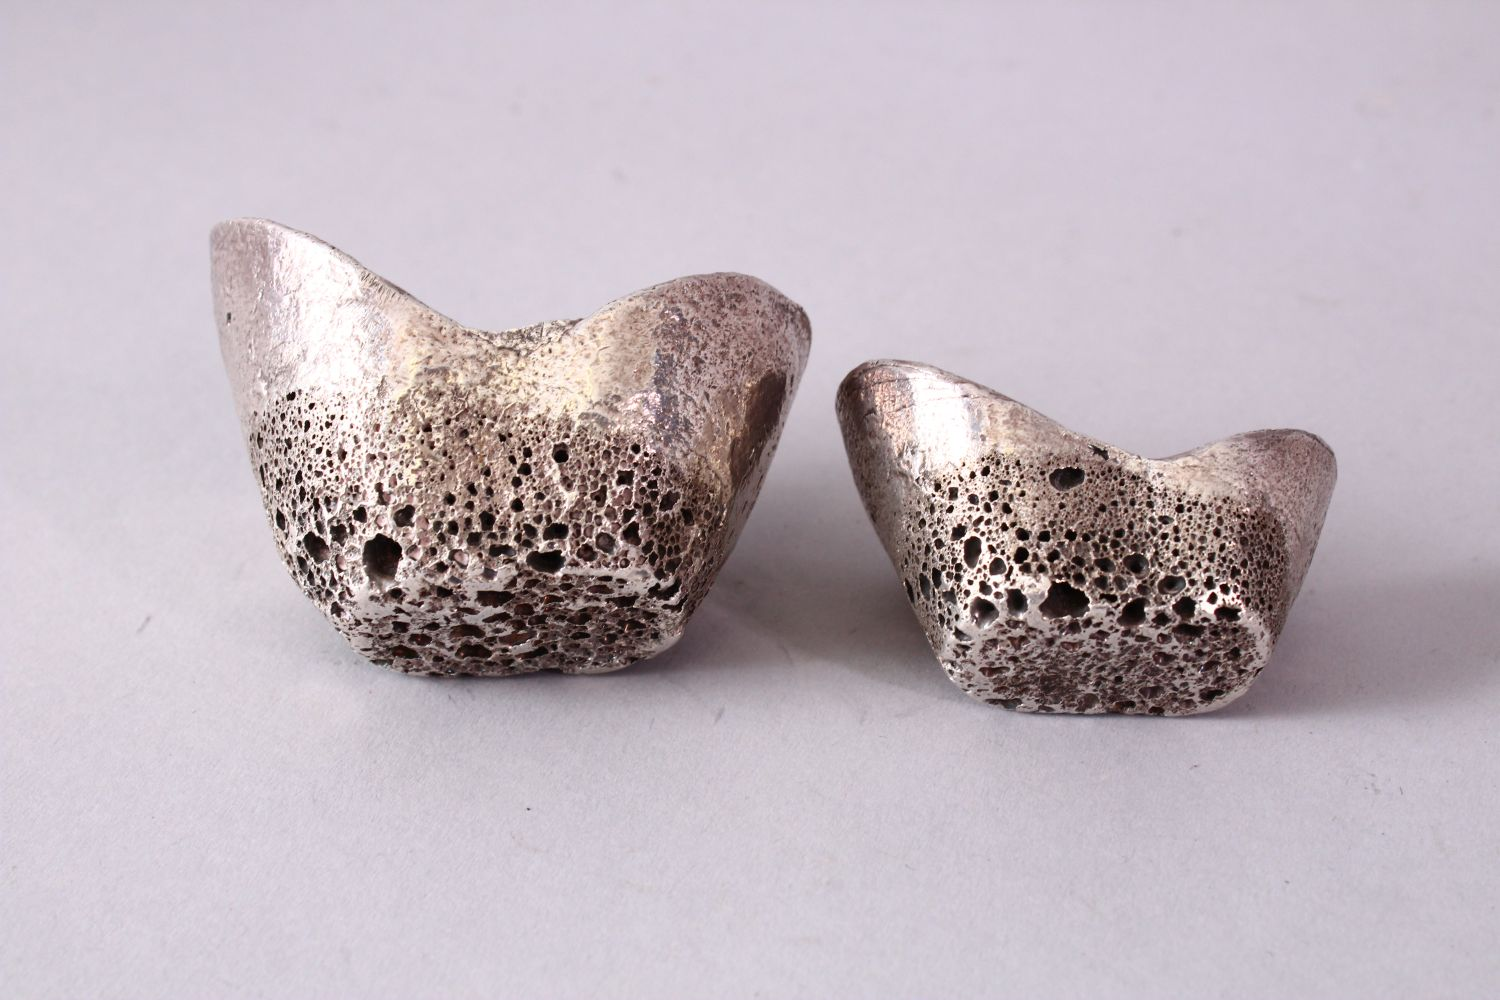 TWO PIECES OF CHINESE WHITE METAL POSSIBLY SILVER SHOE CURRENCY, 7cm and 6.5cm. - Image 3 of 3